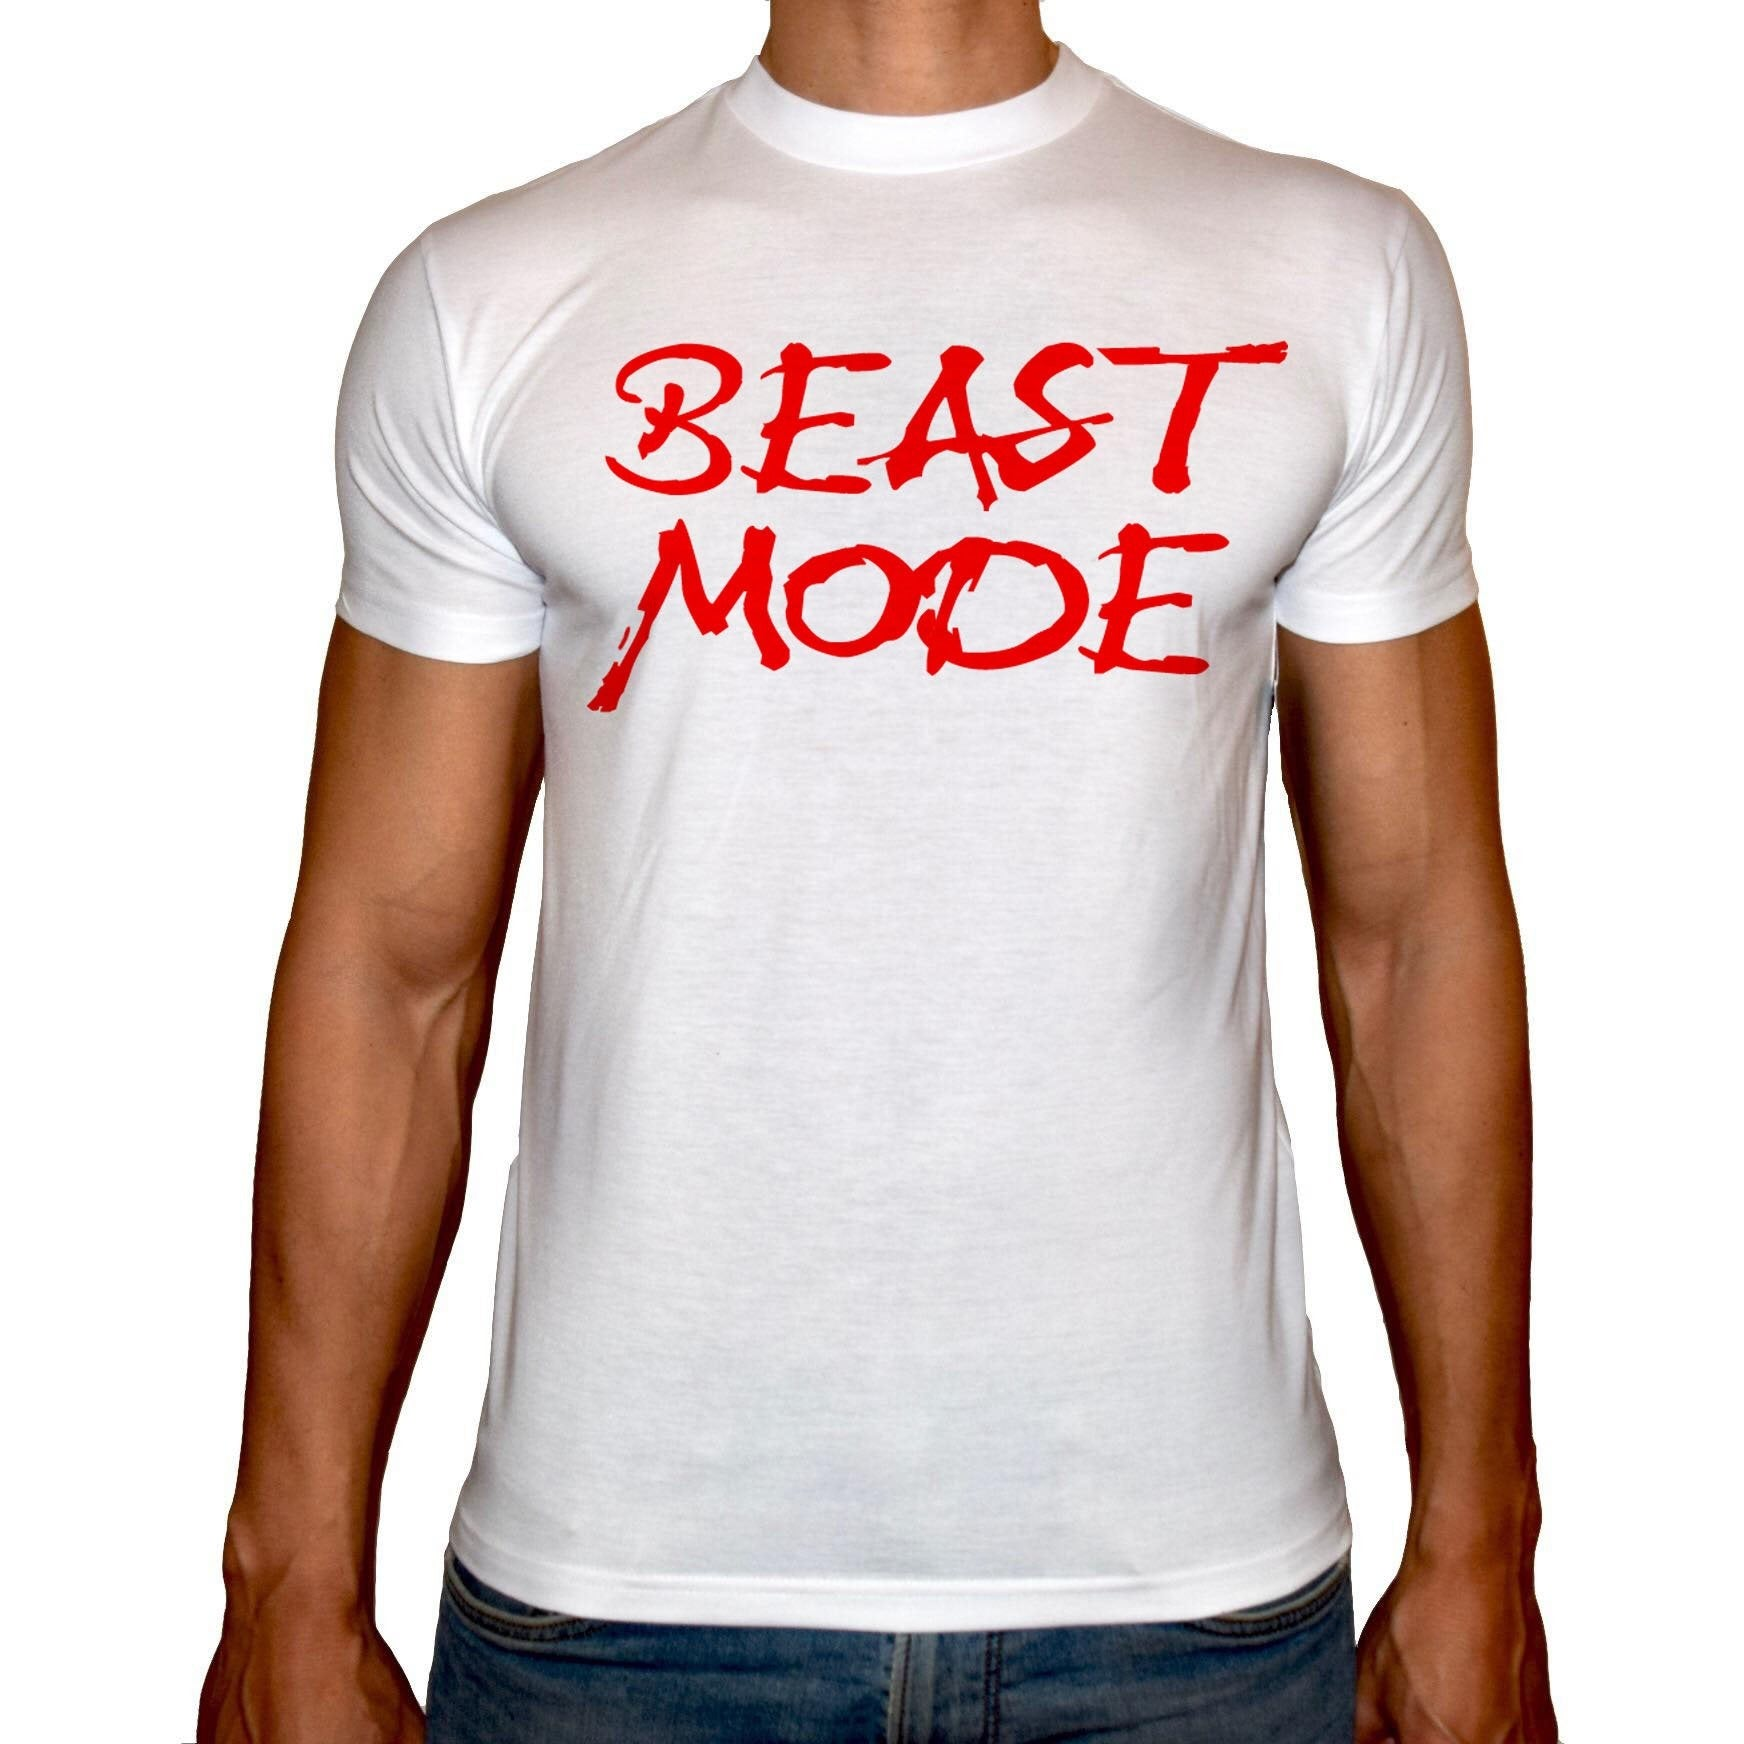 Phoenix WHITE Round Neck Printed Shirt Men (Beast mood )